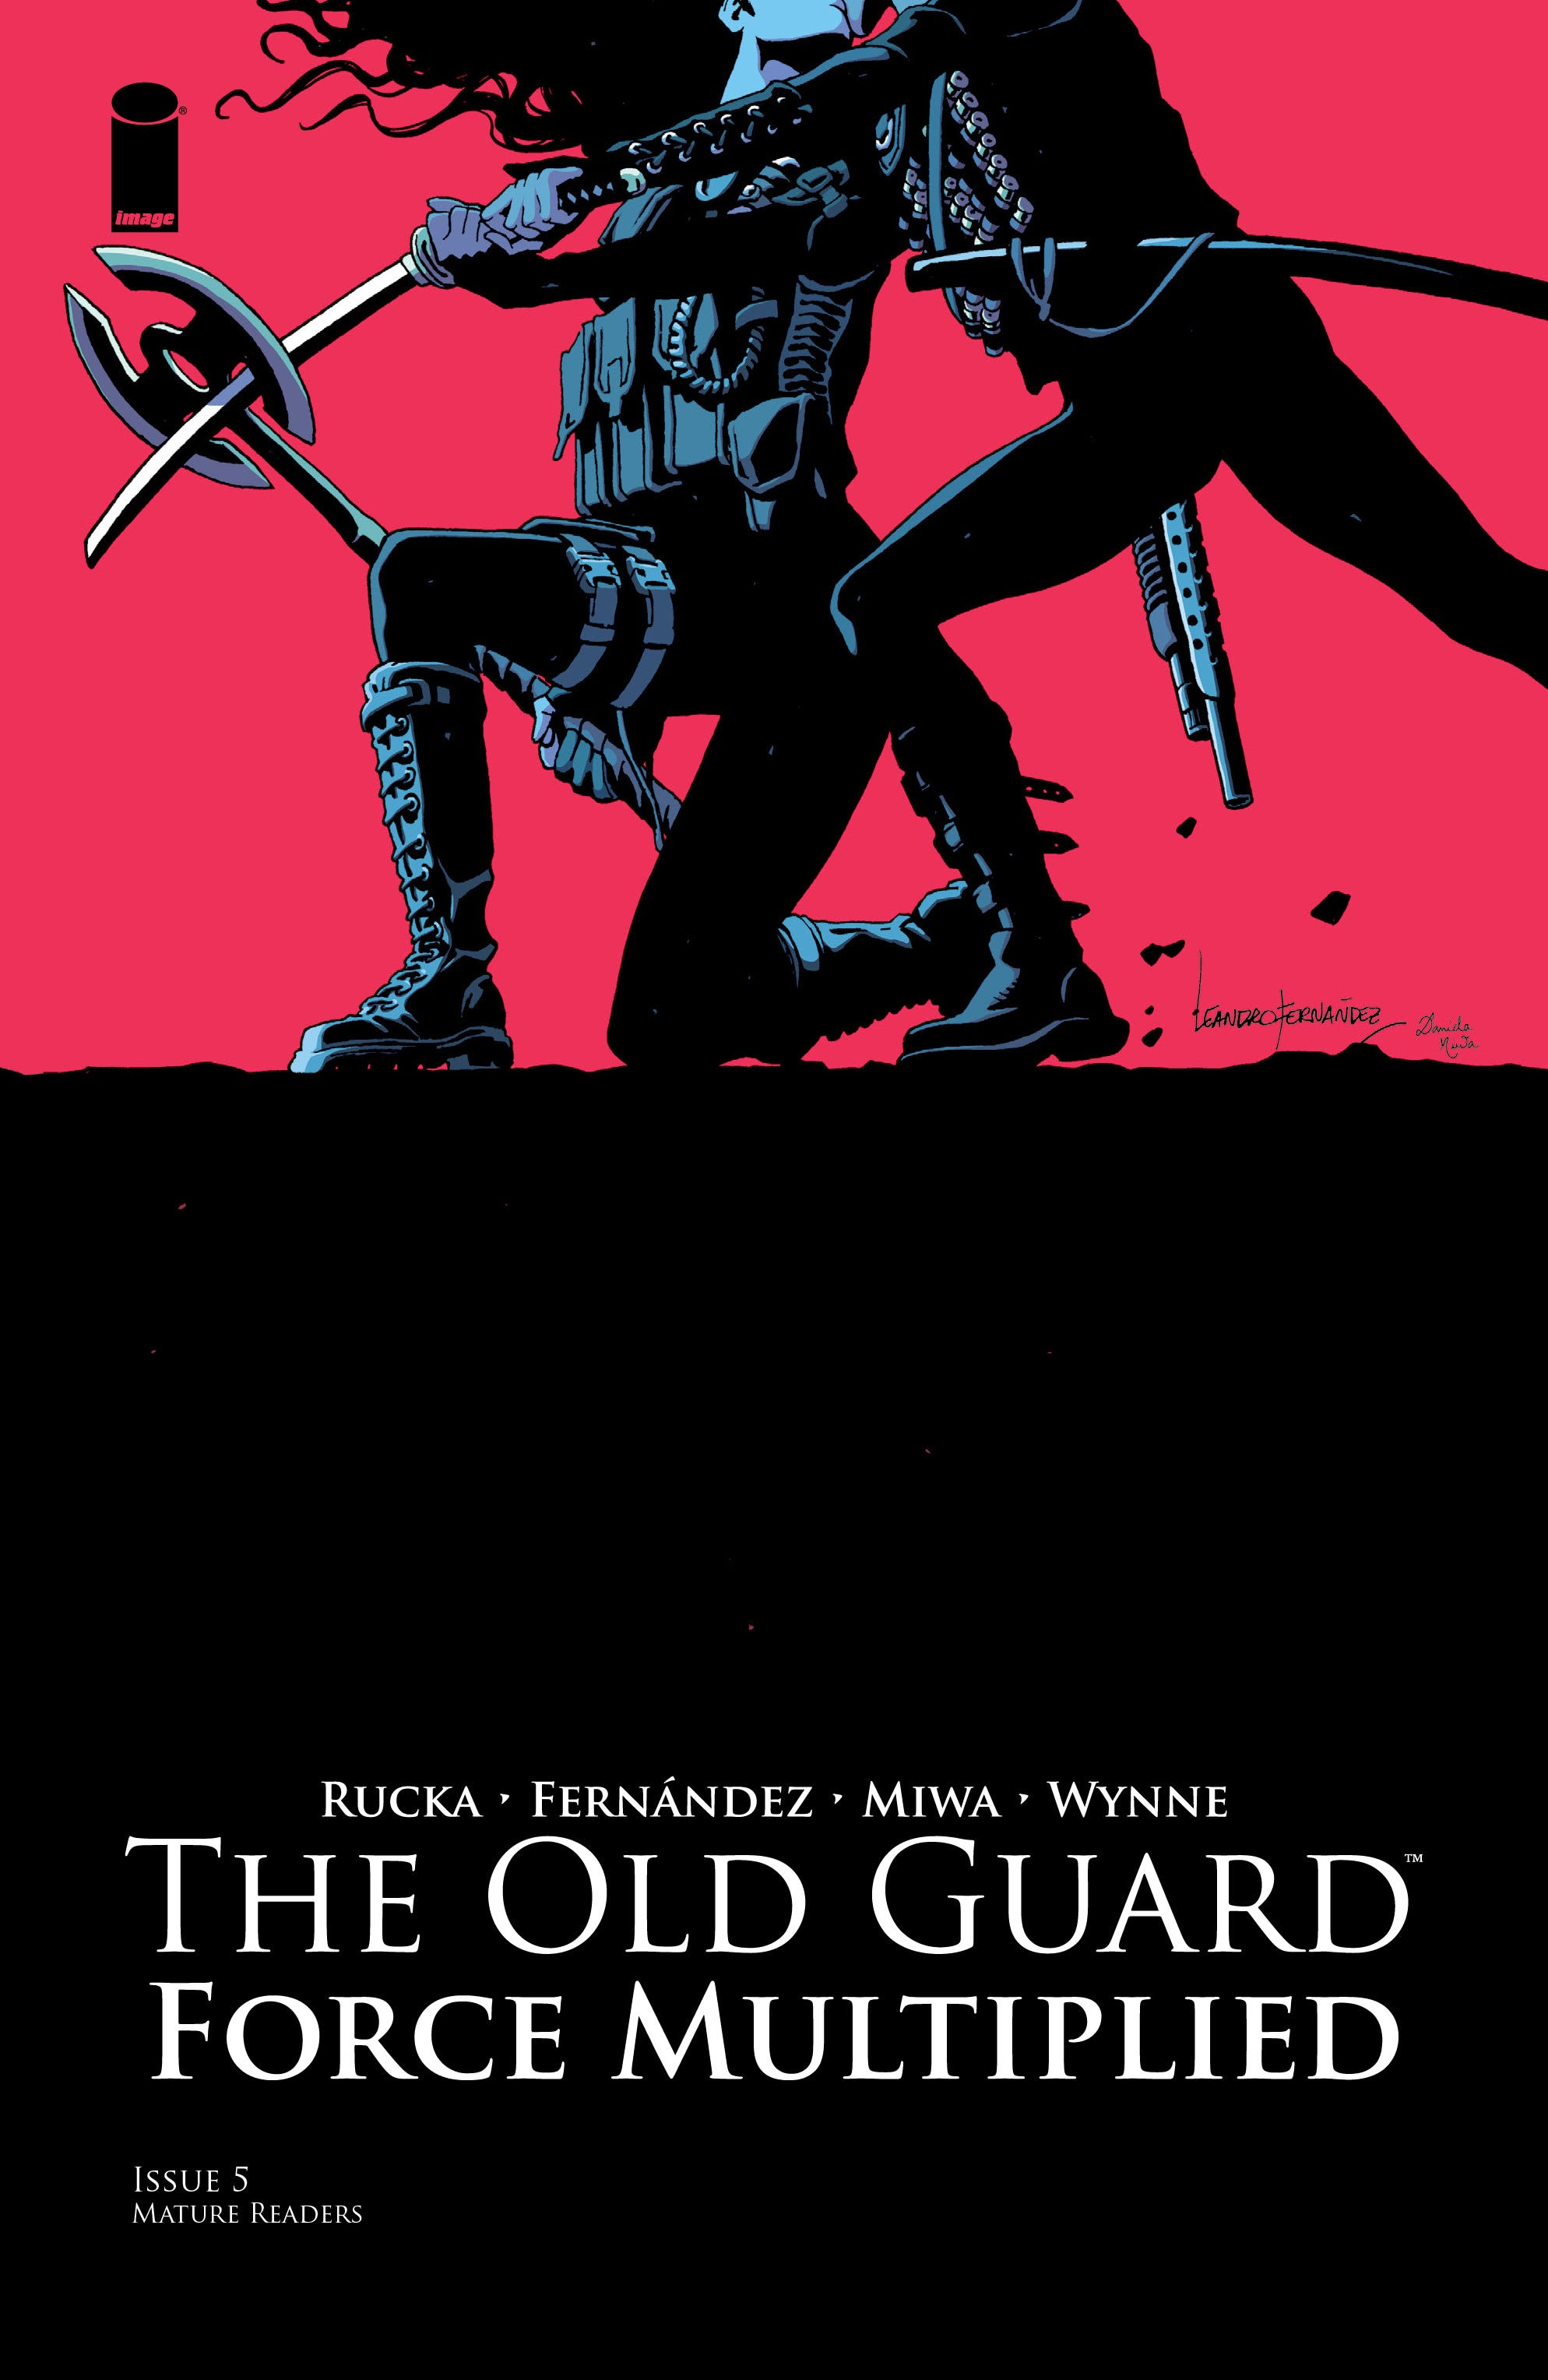 The Old Guard: Force Multiplied 5 Page 1